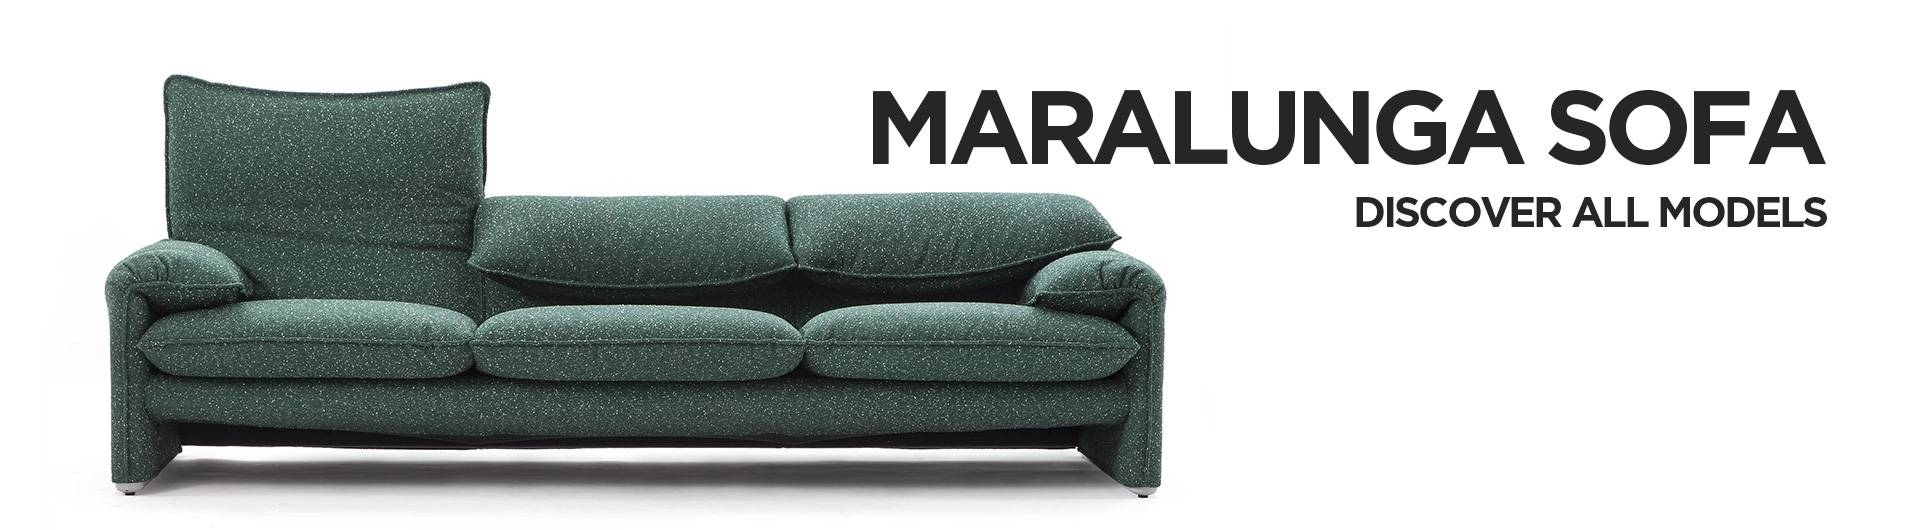 Chair Sleeper Sofas Sofa Beds Furniture Row Armchair Bed Single for Luxury Sofa Beds (Image 2 of 30)